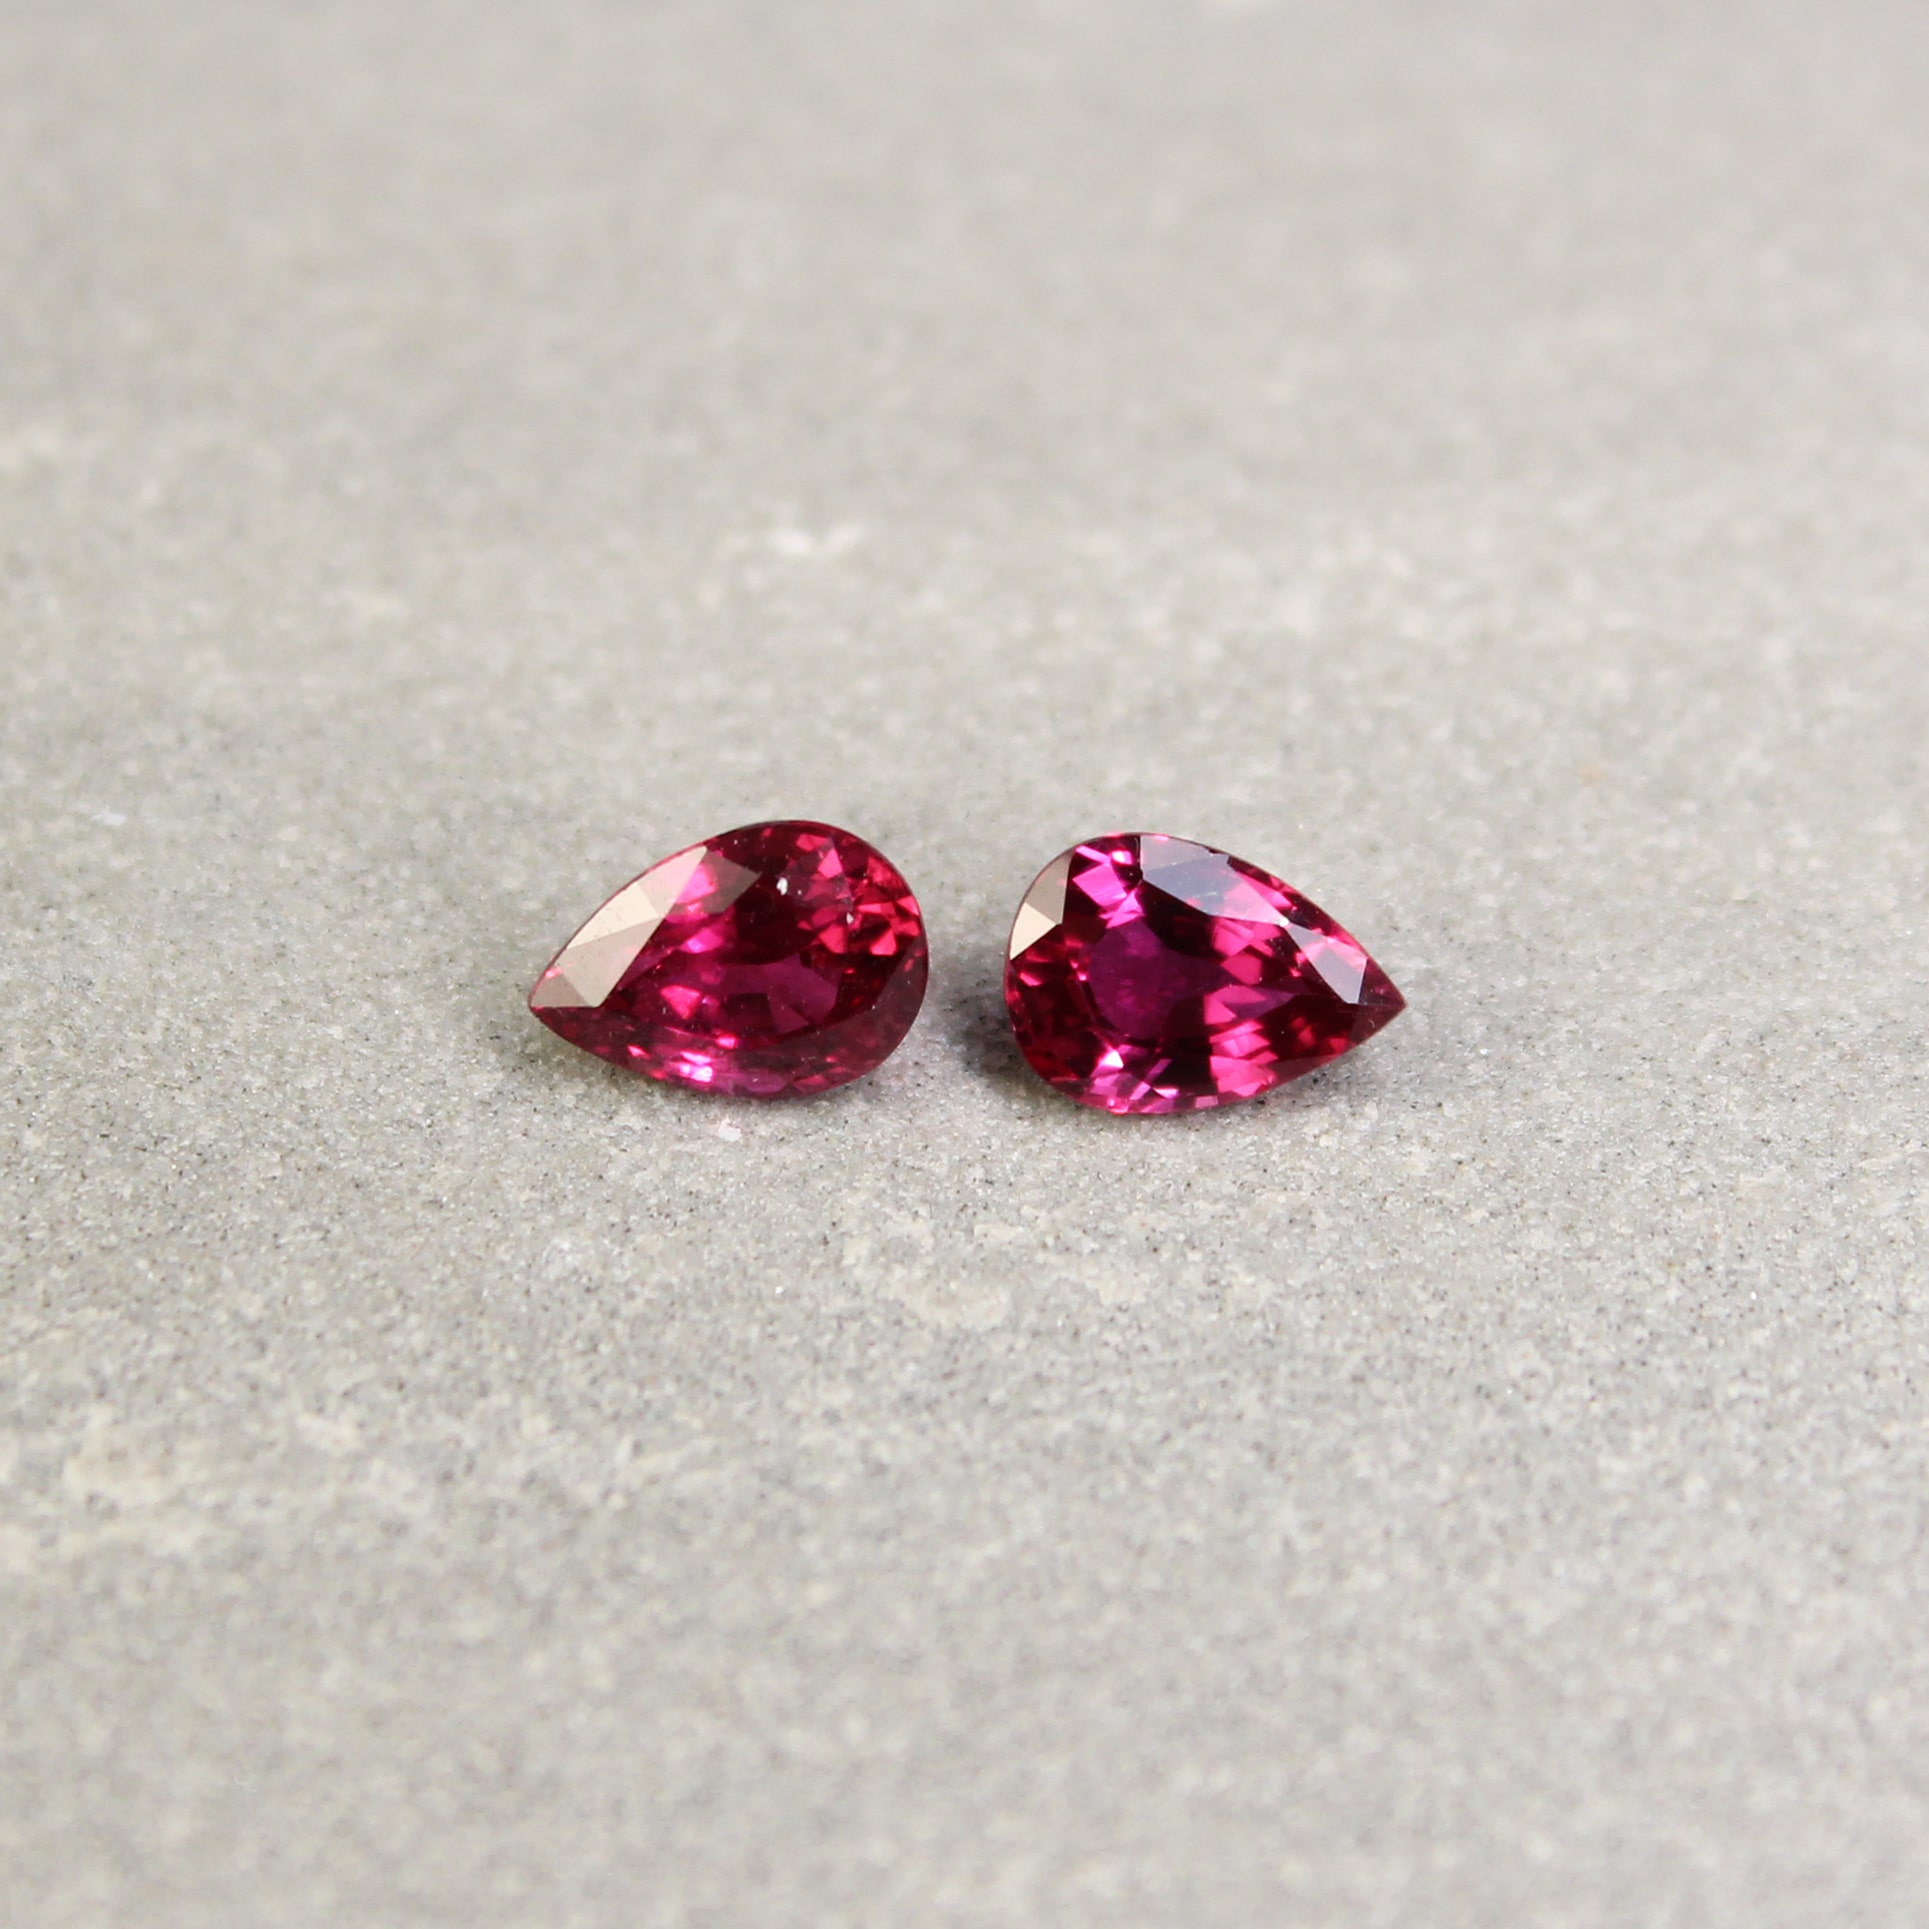 1.87 ct pear shape ruby pair